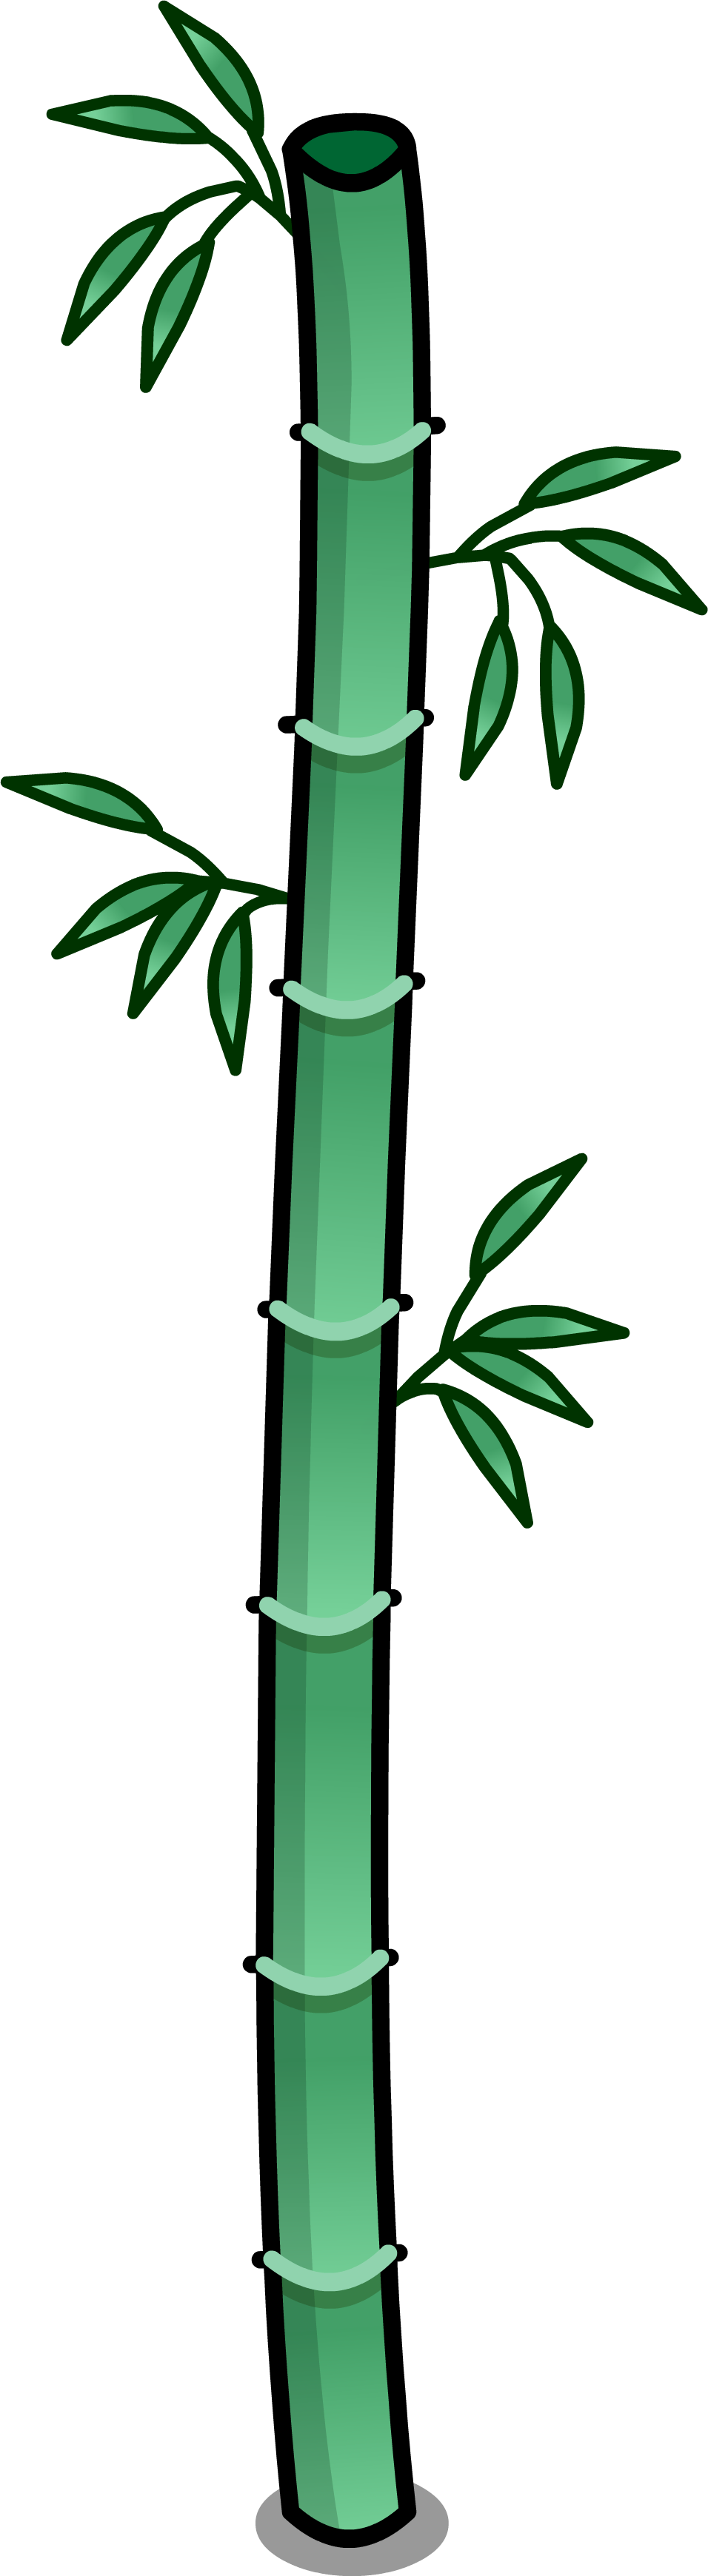 Image stalks sprite png. Bamboo clipart bamboo stalk